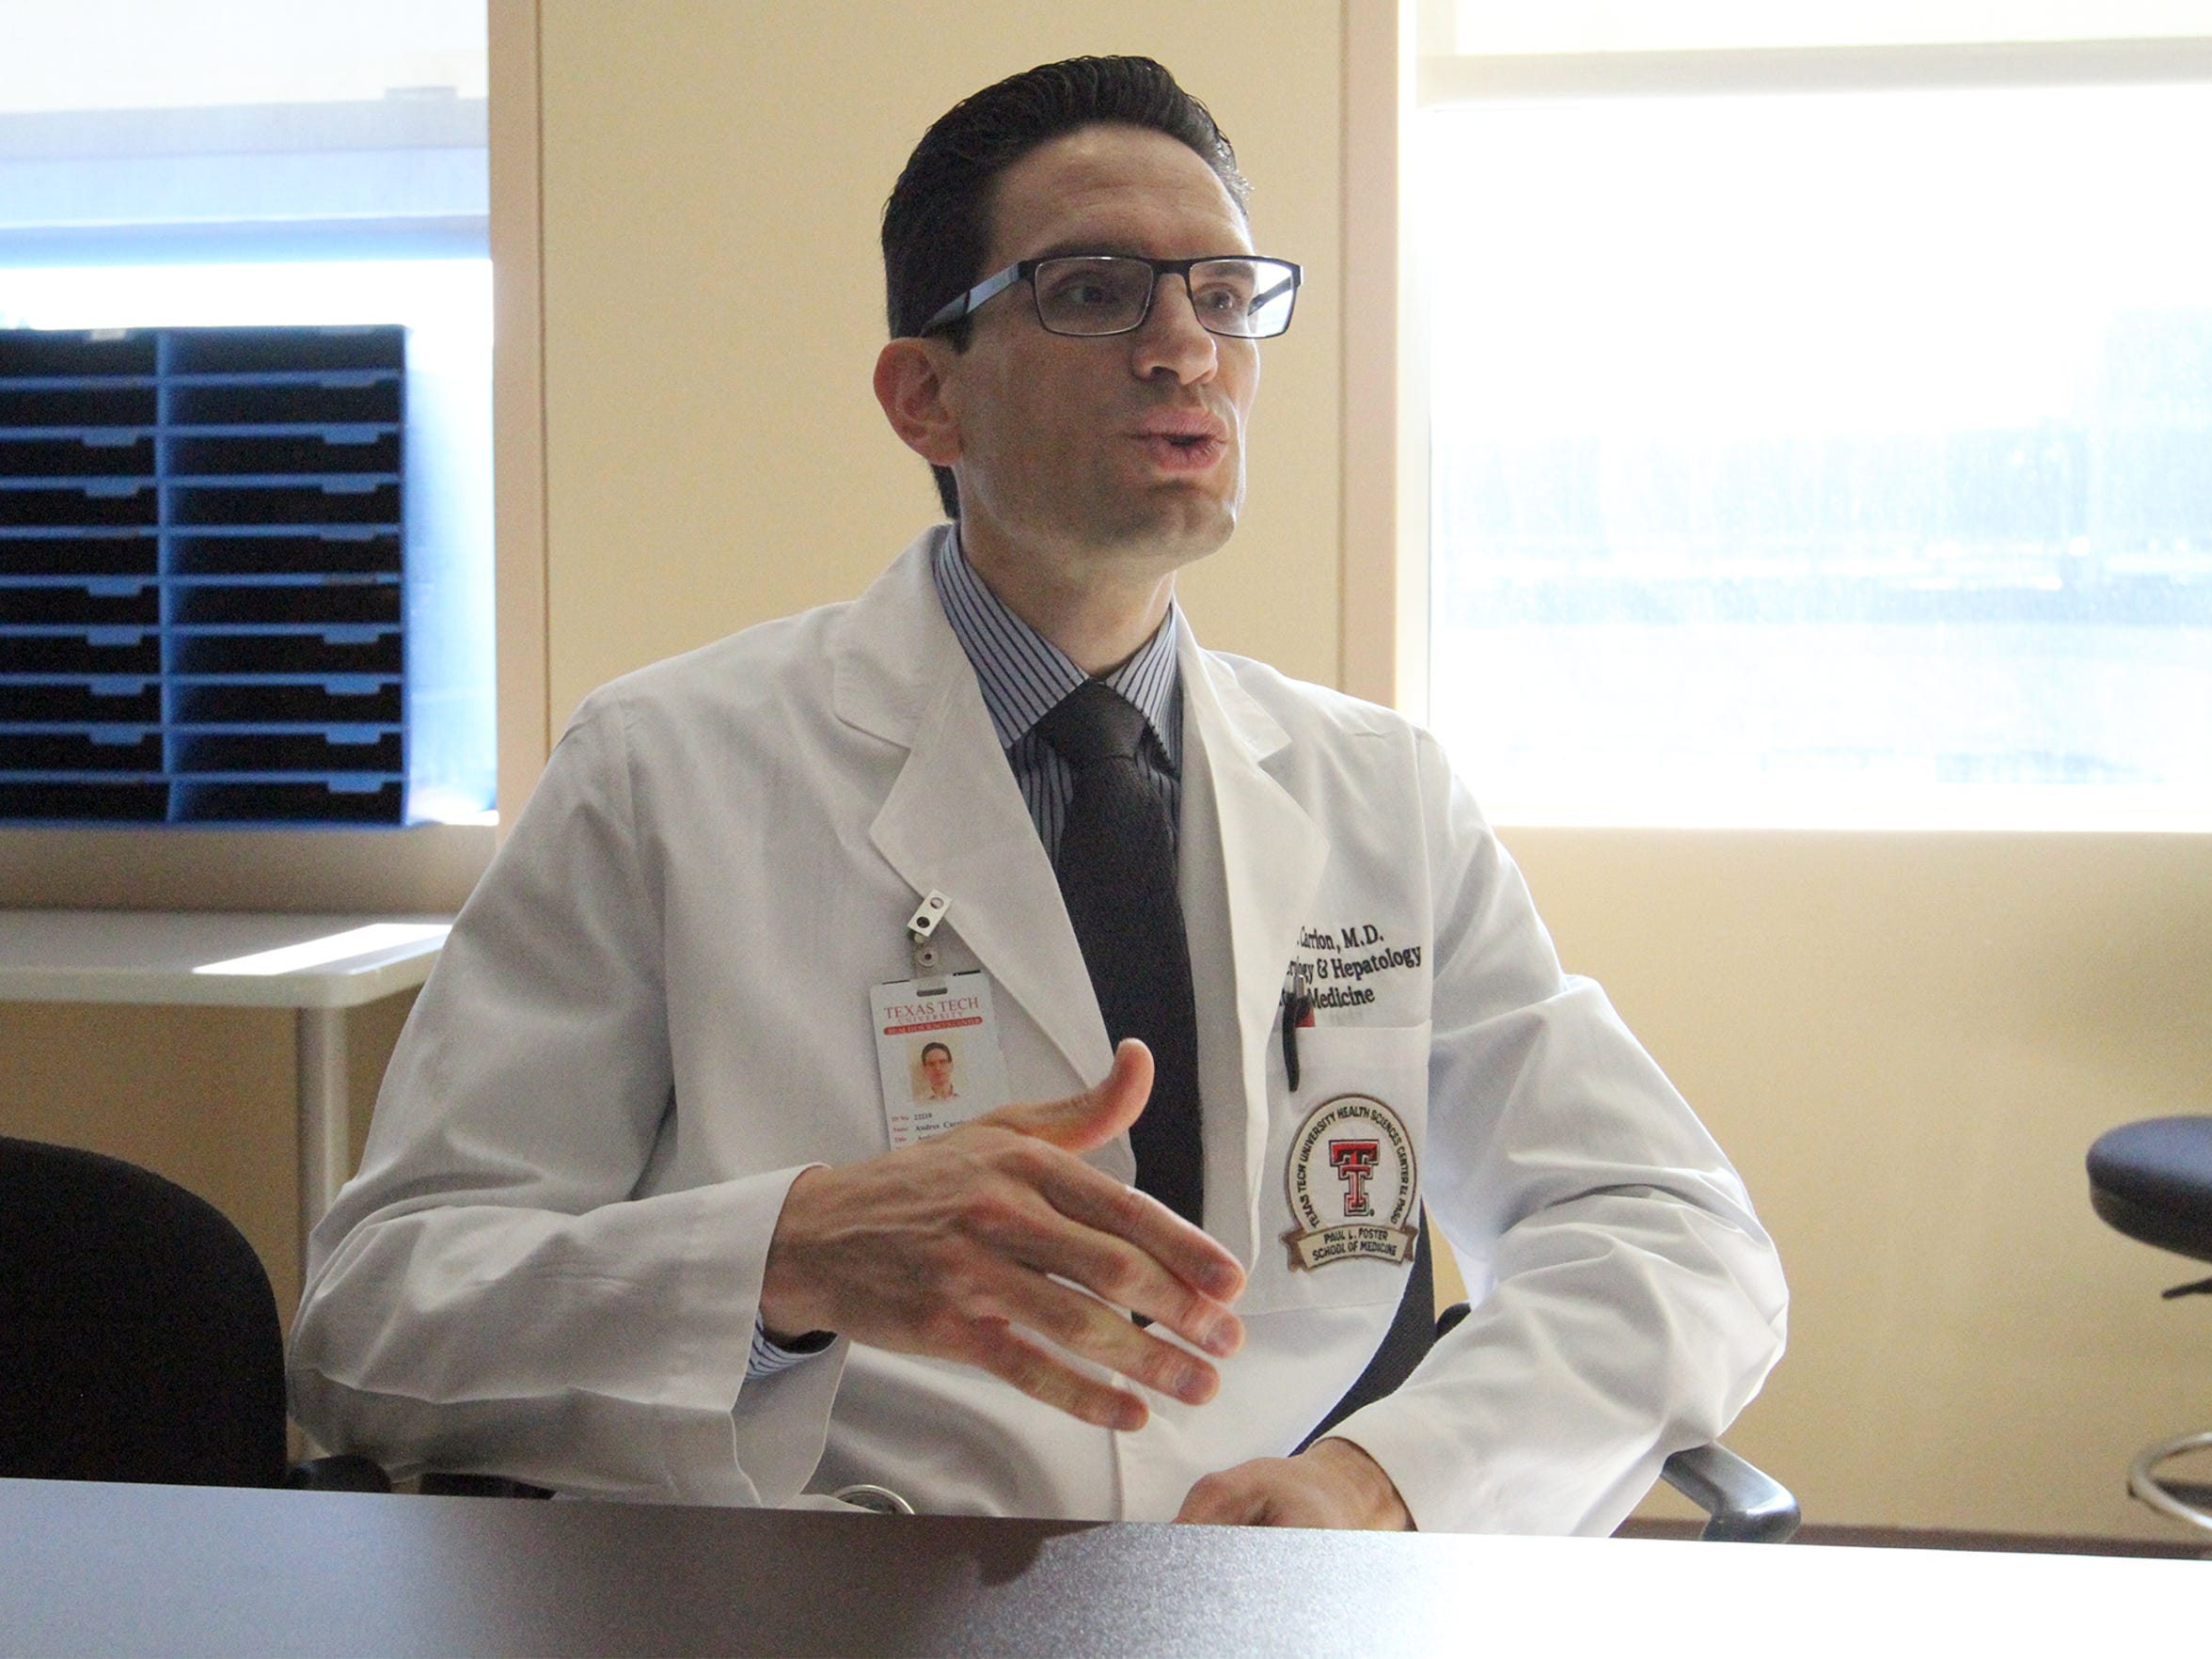 Dr. Andres Carrion is a liver specialist with Texas Tech University Health Sciences Center at El Paso.